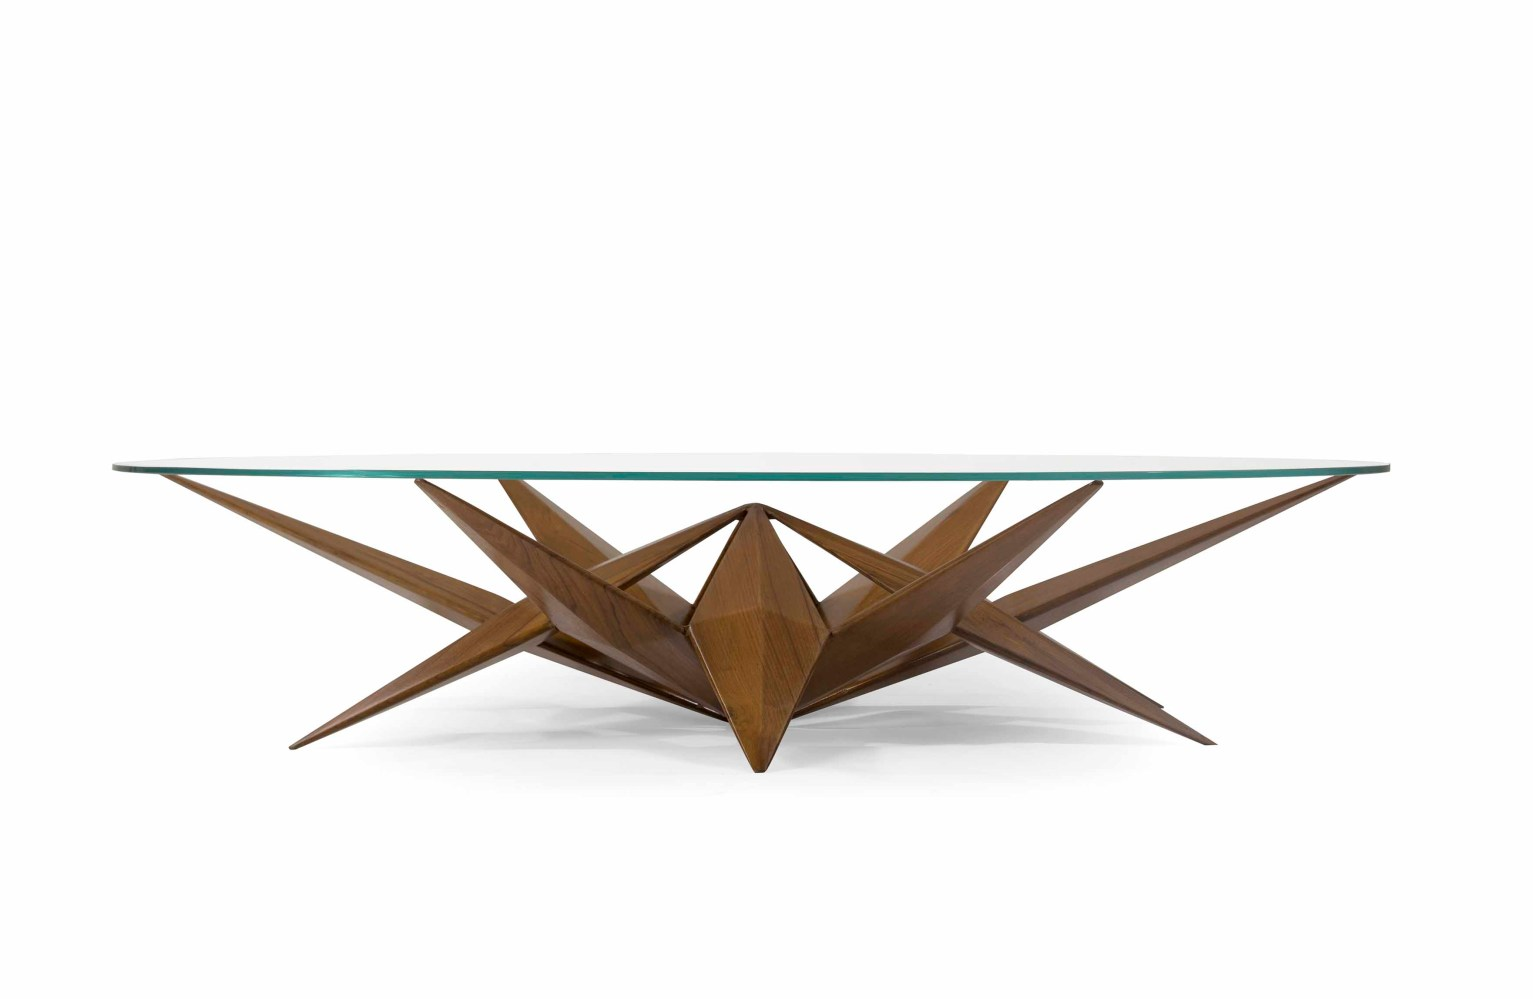 Symmetry takes centerstage with the Lotus Table